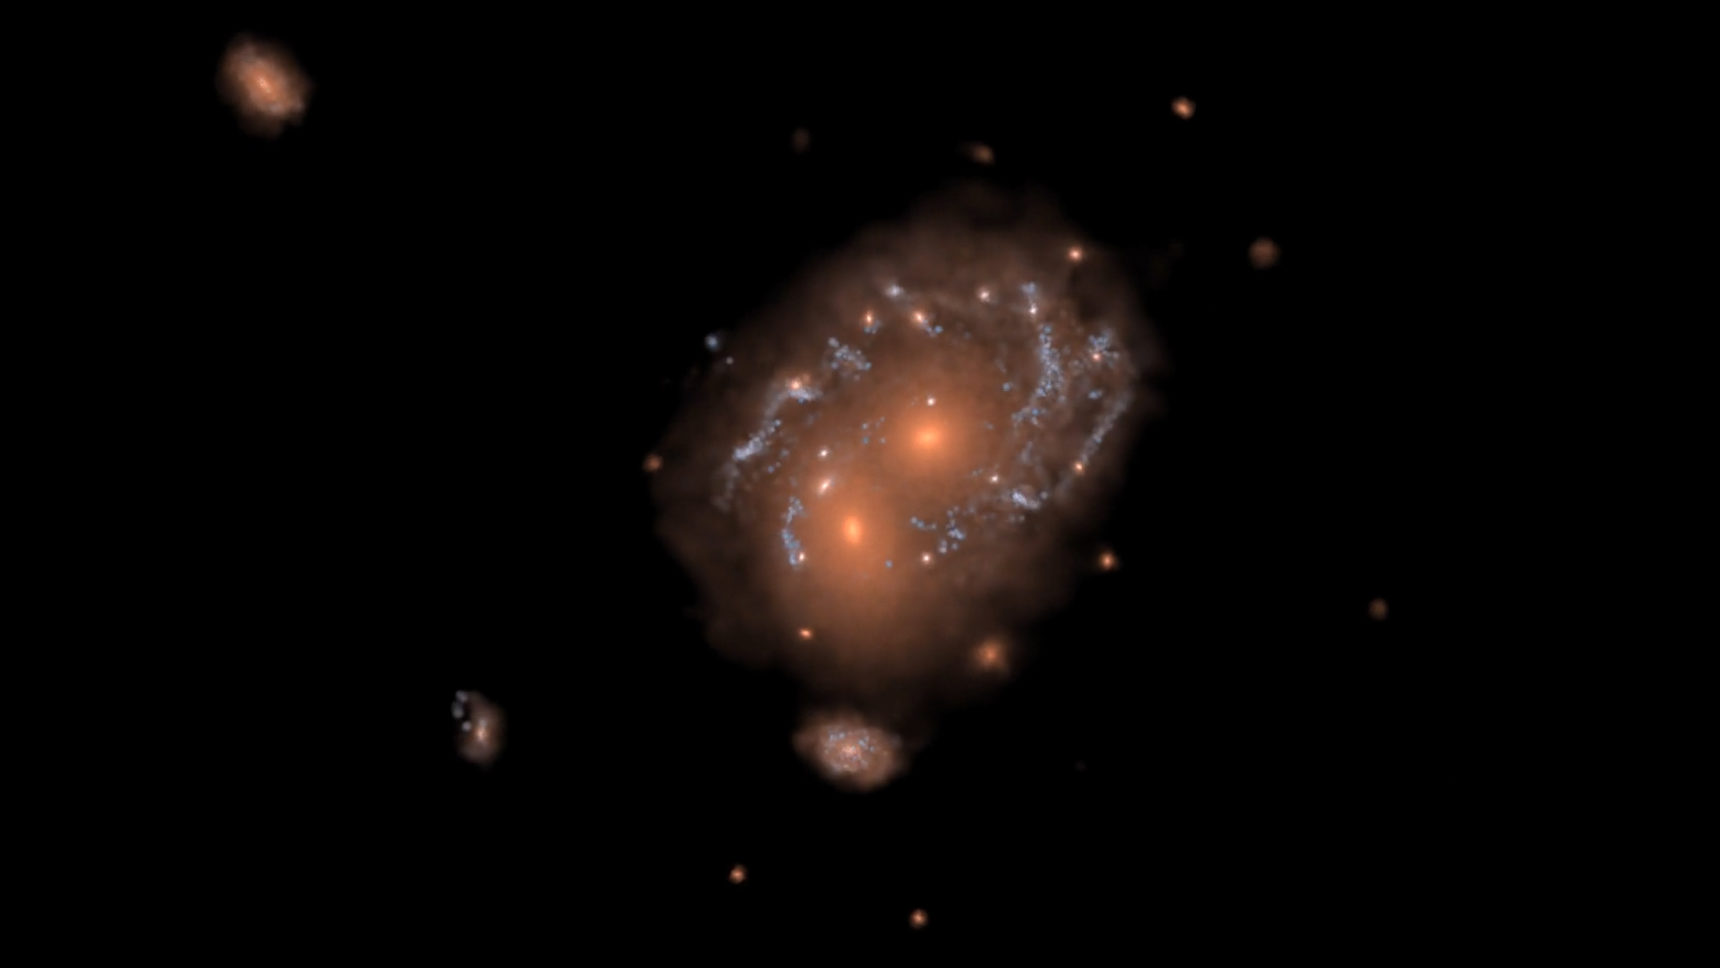 Video: The formation of a Milky Way-size disk galaxy and its merger with another galaxy in the IllustrisTNG simulation.